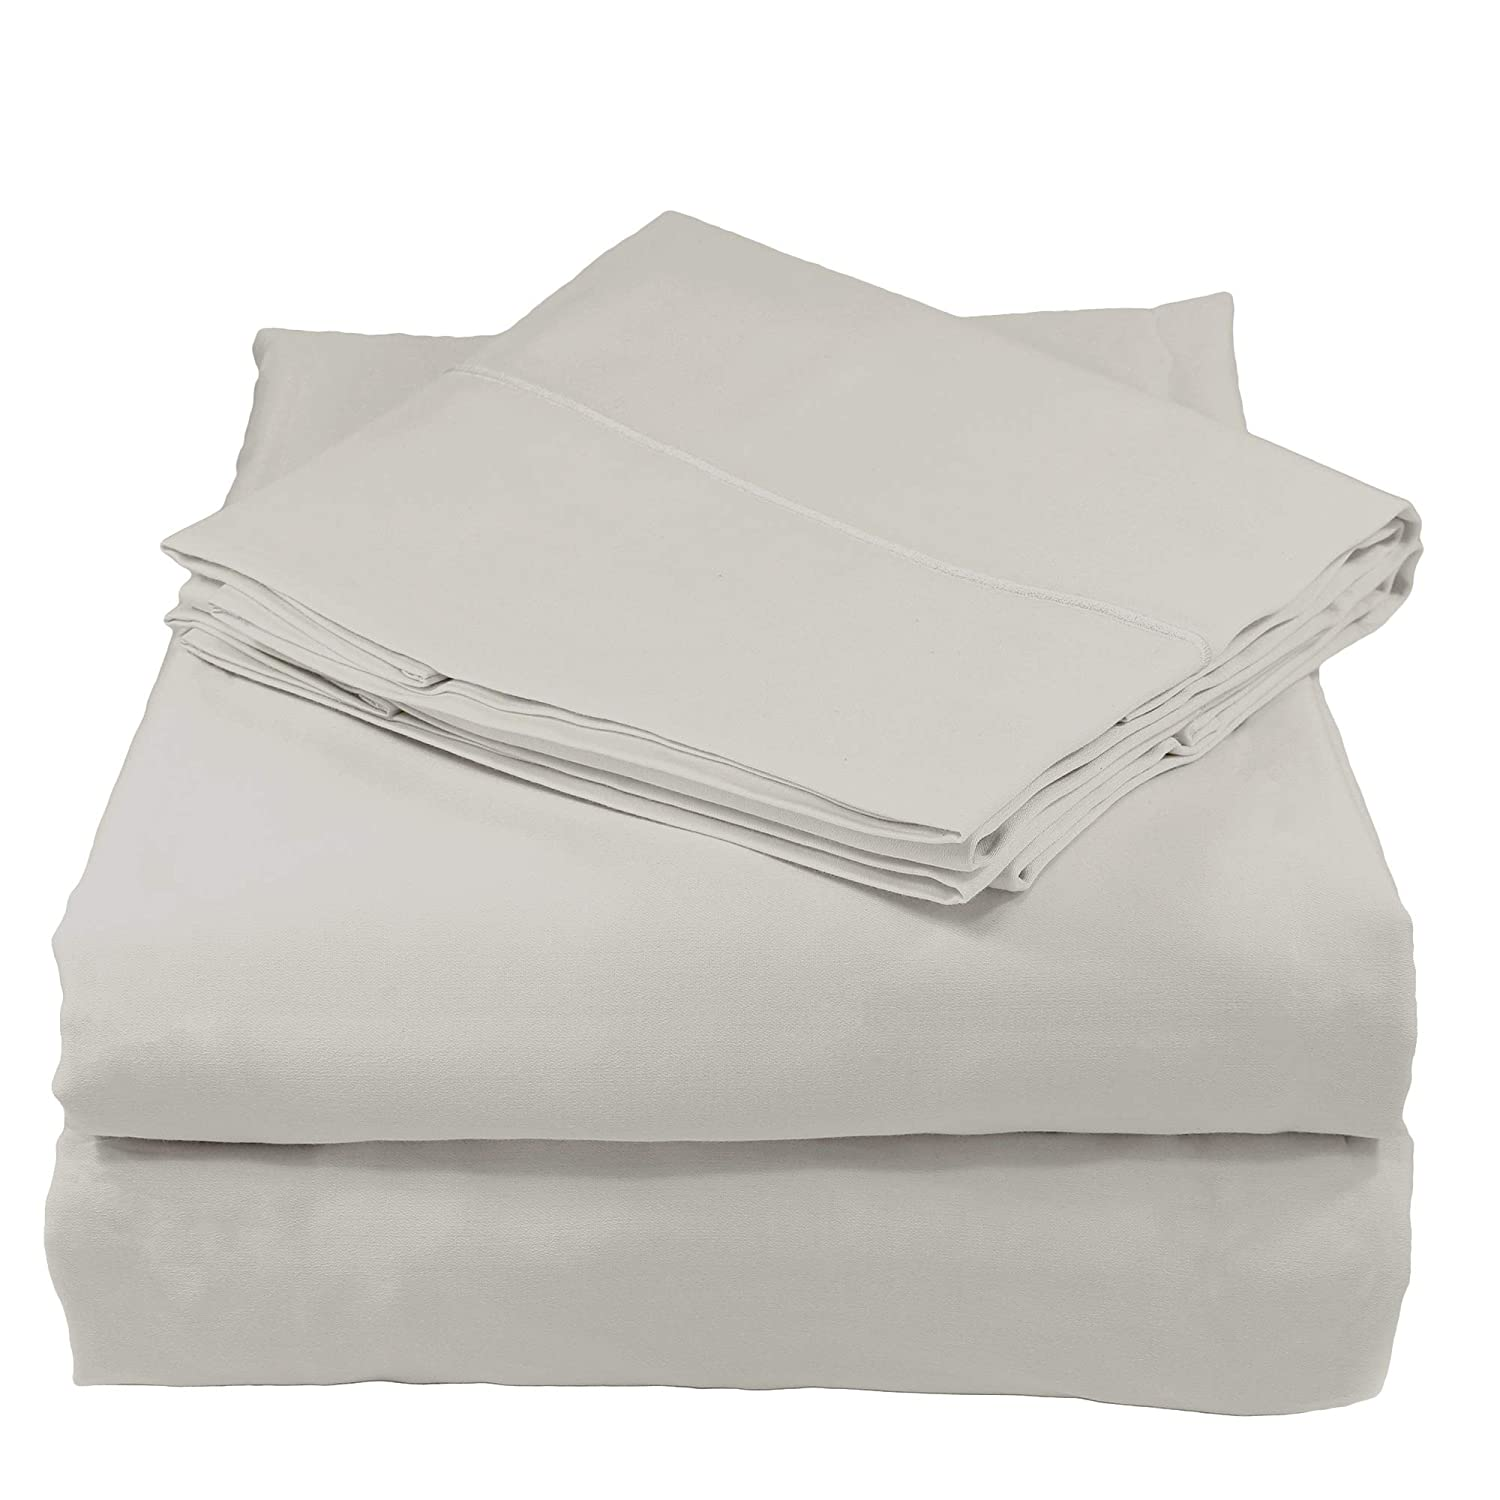 Silver CaliforniaKing Whisper Organics 300 Thread Count Soft Cotton Twin Bed Sheet Set (GOTS Certified), White